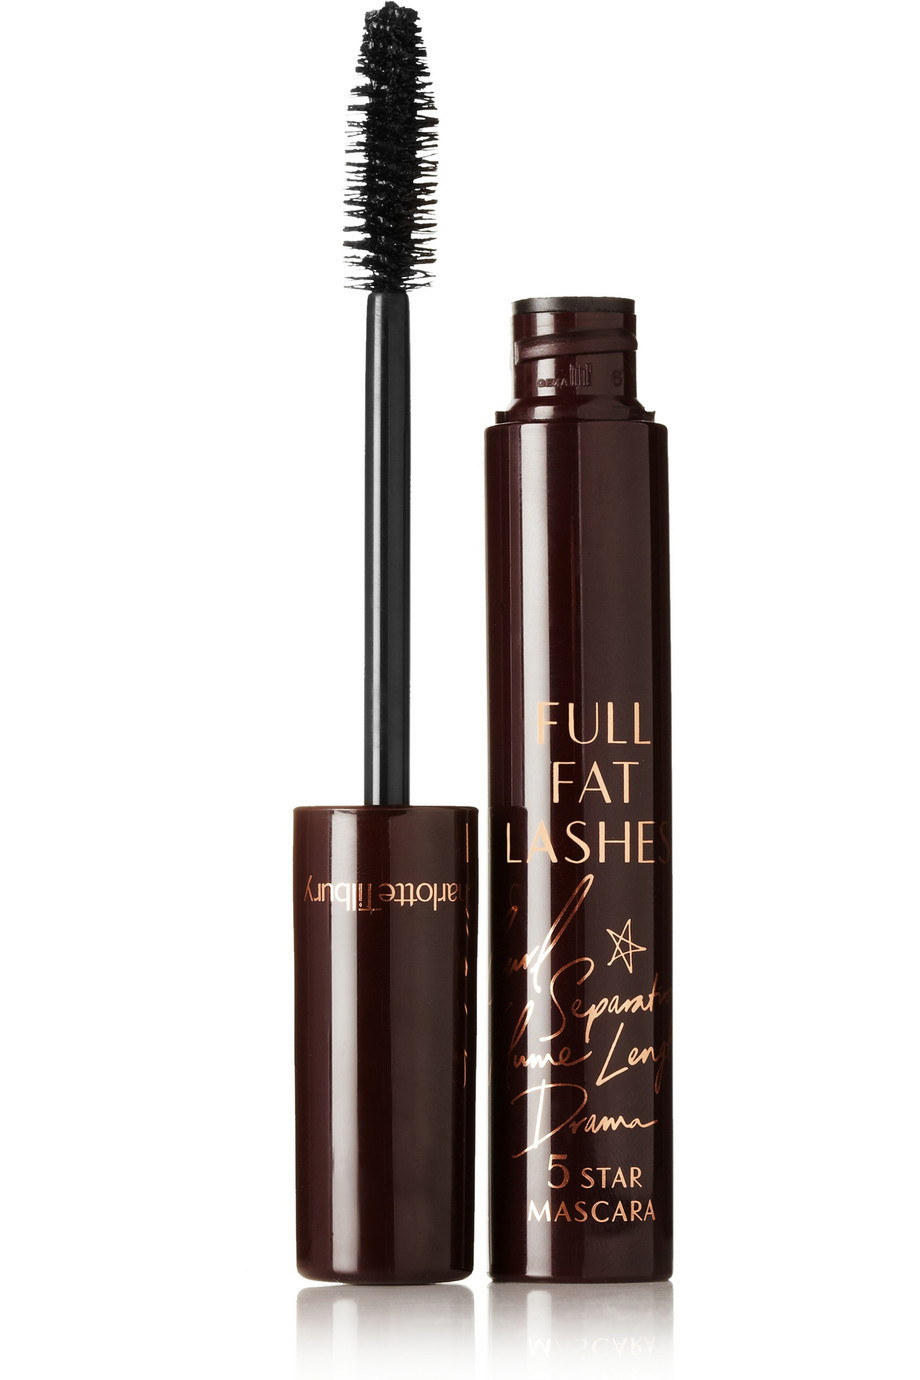 CHARLOTTE TILBURY Full Fat Lashes 5スターマスカラ ブラック